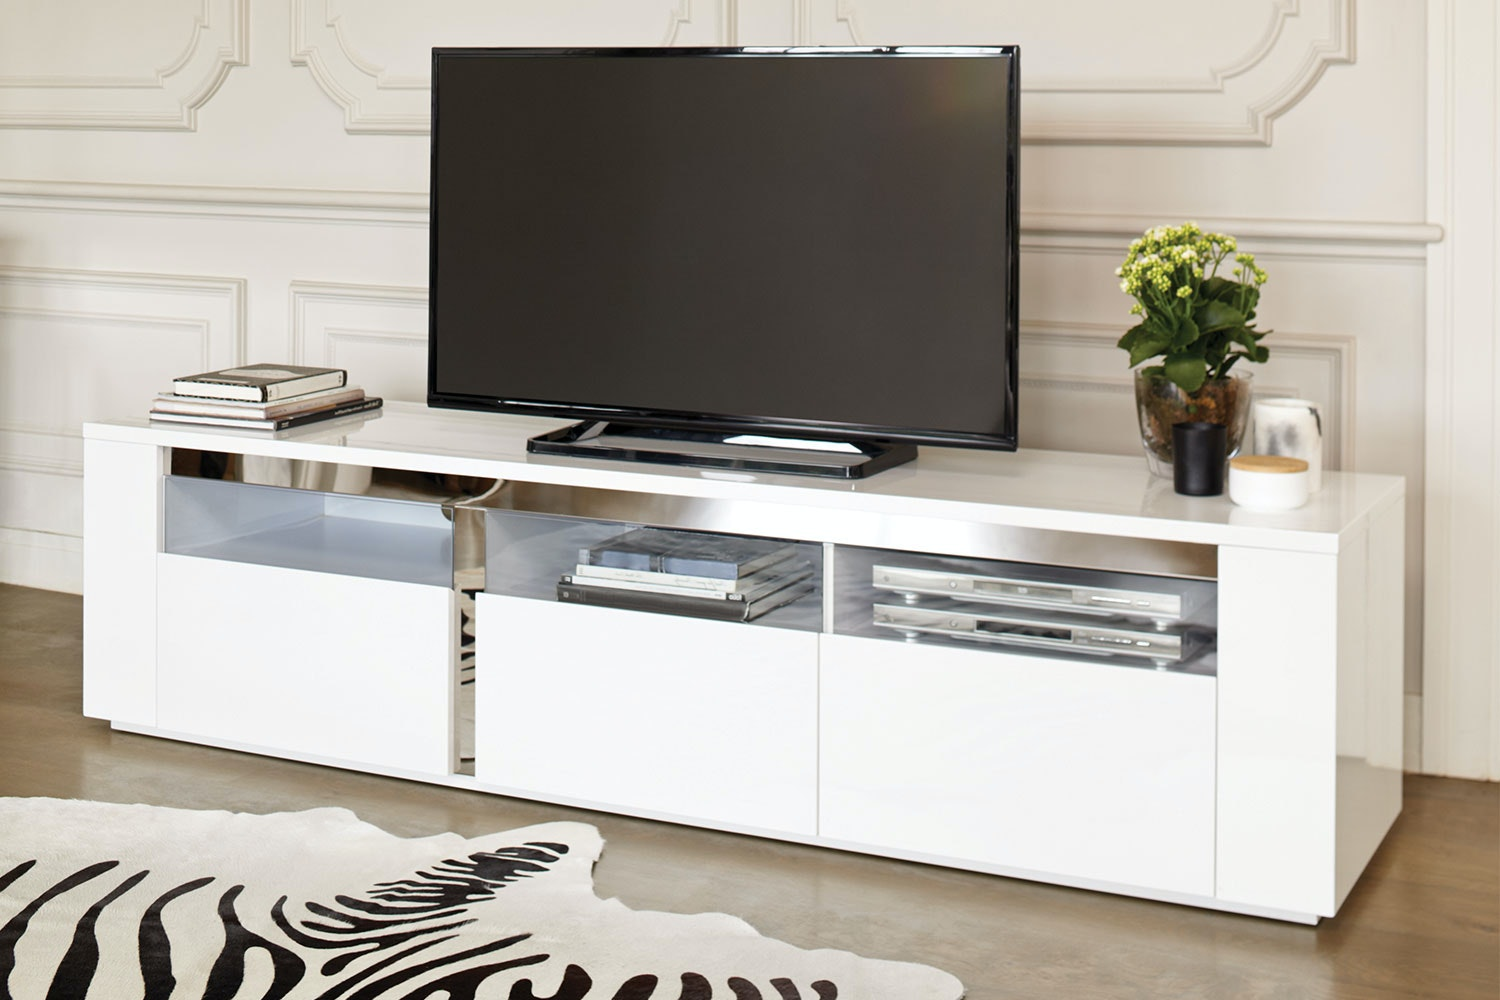 Senti Entertainment Unit by Insato Furniture